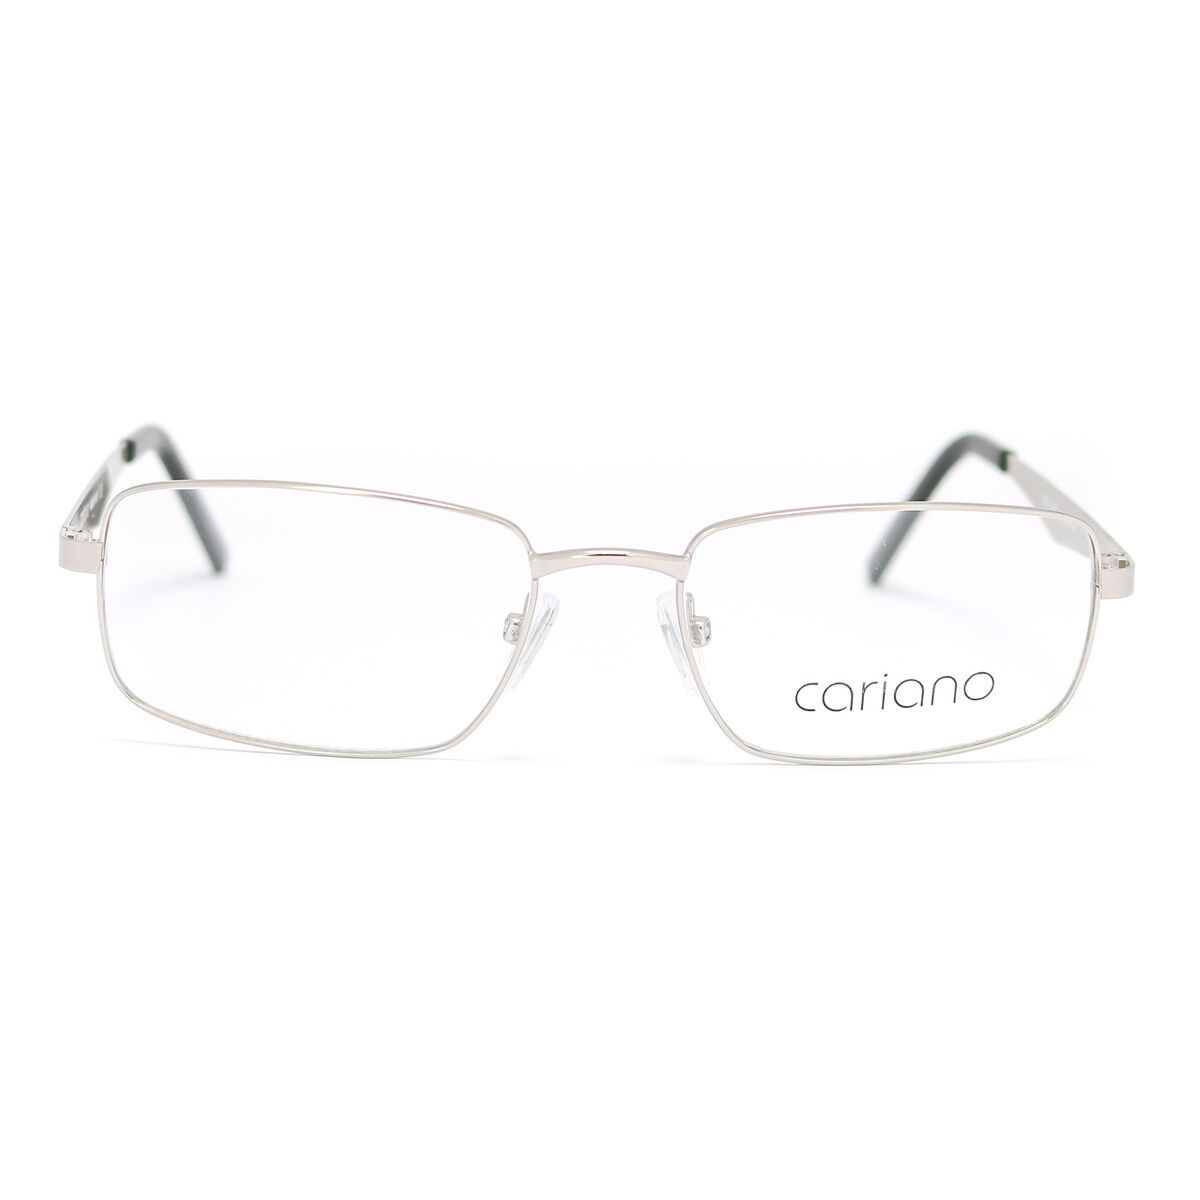 Cariano - 5006 A size - 54